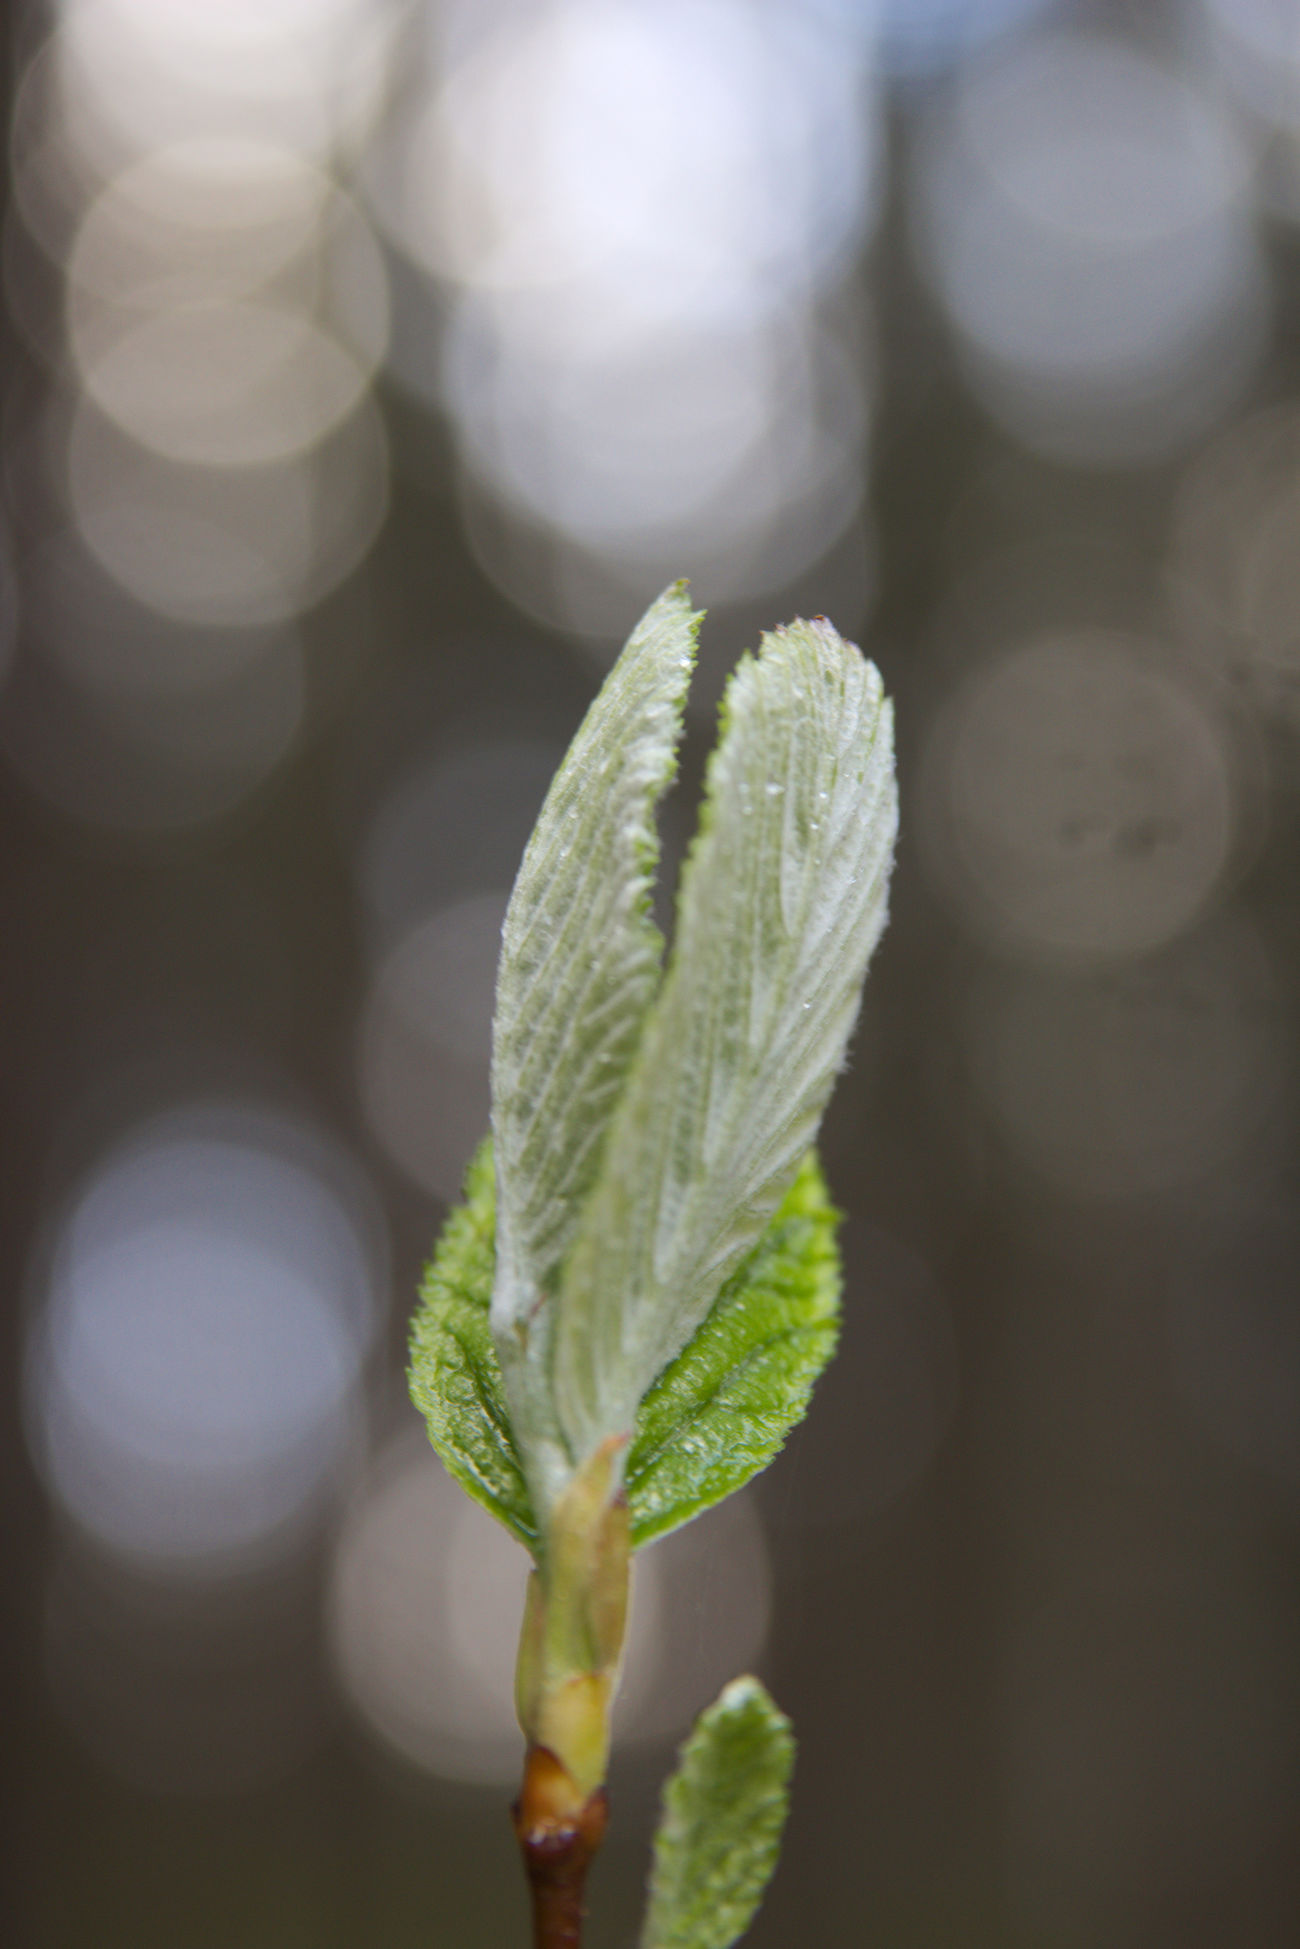 Beauty In Nature Close-up Day Eye4photography  EyeEm Nature Lover Focus Focus On Foreground Fragility Freshness Green Color Growth Leaf Light Morning Nature Nature Nature Photography Nature_collection Naturelovers New Life No People Outdoors Plant Sunlight